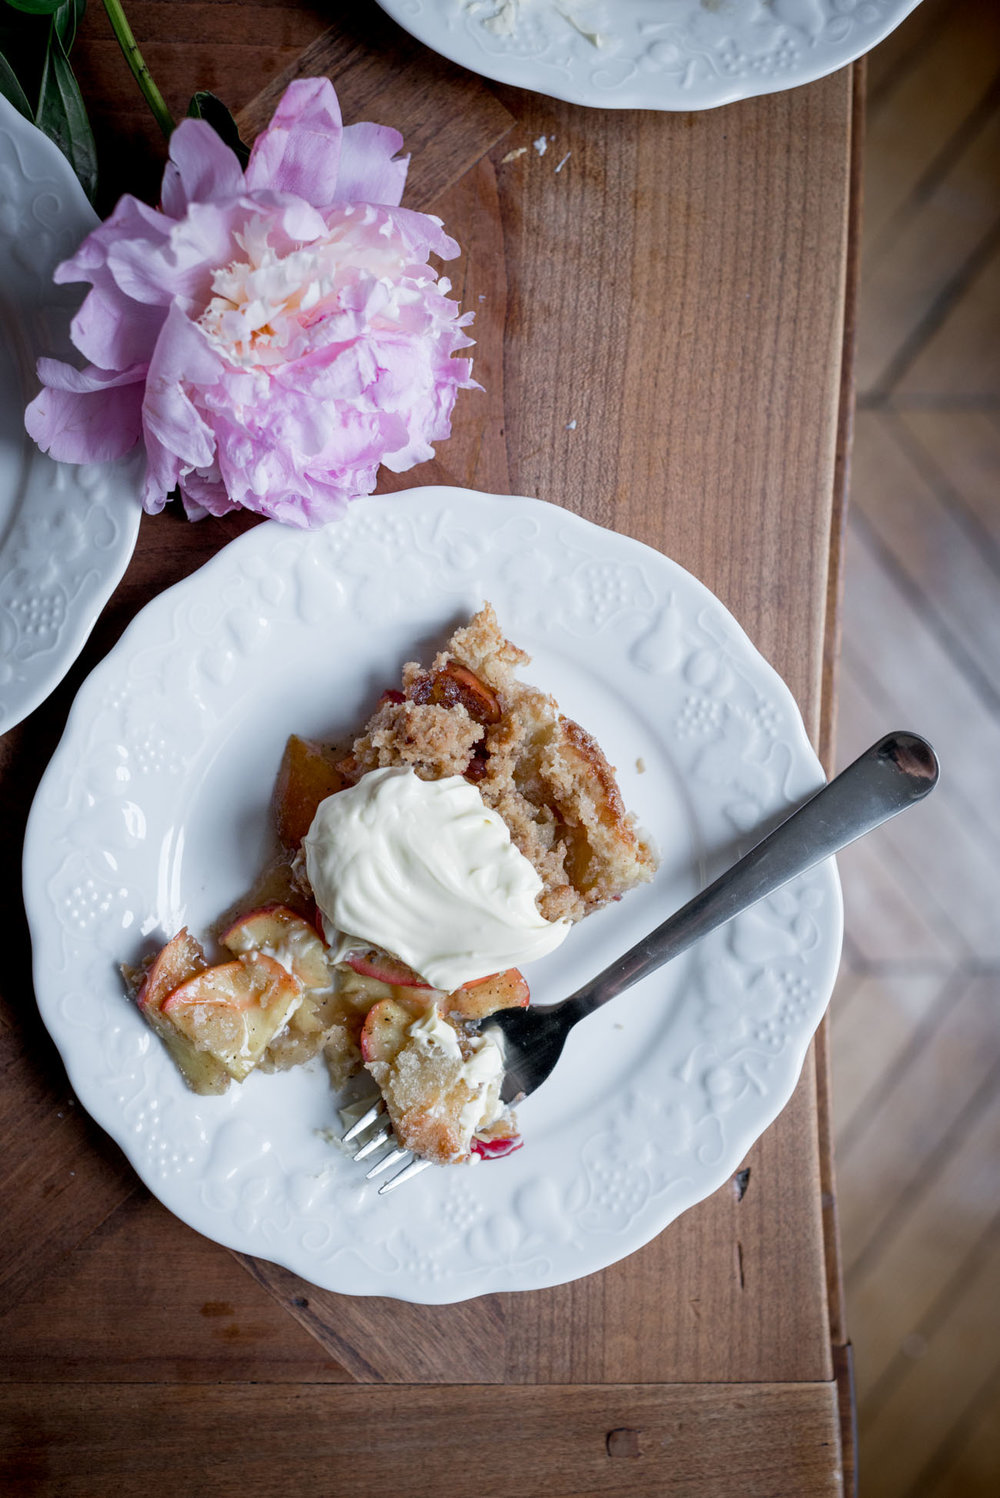 Hazelnut-Streusel-Apple-Pie-with-Brown-Butter-12.jpg